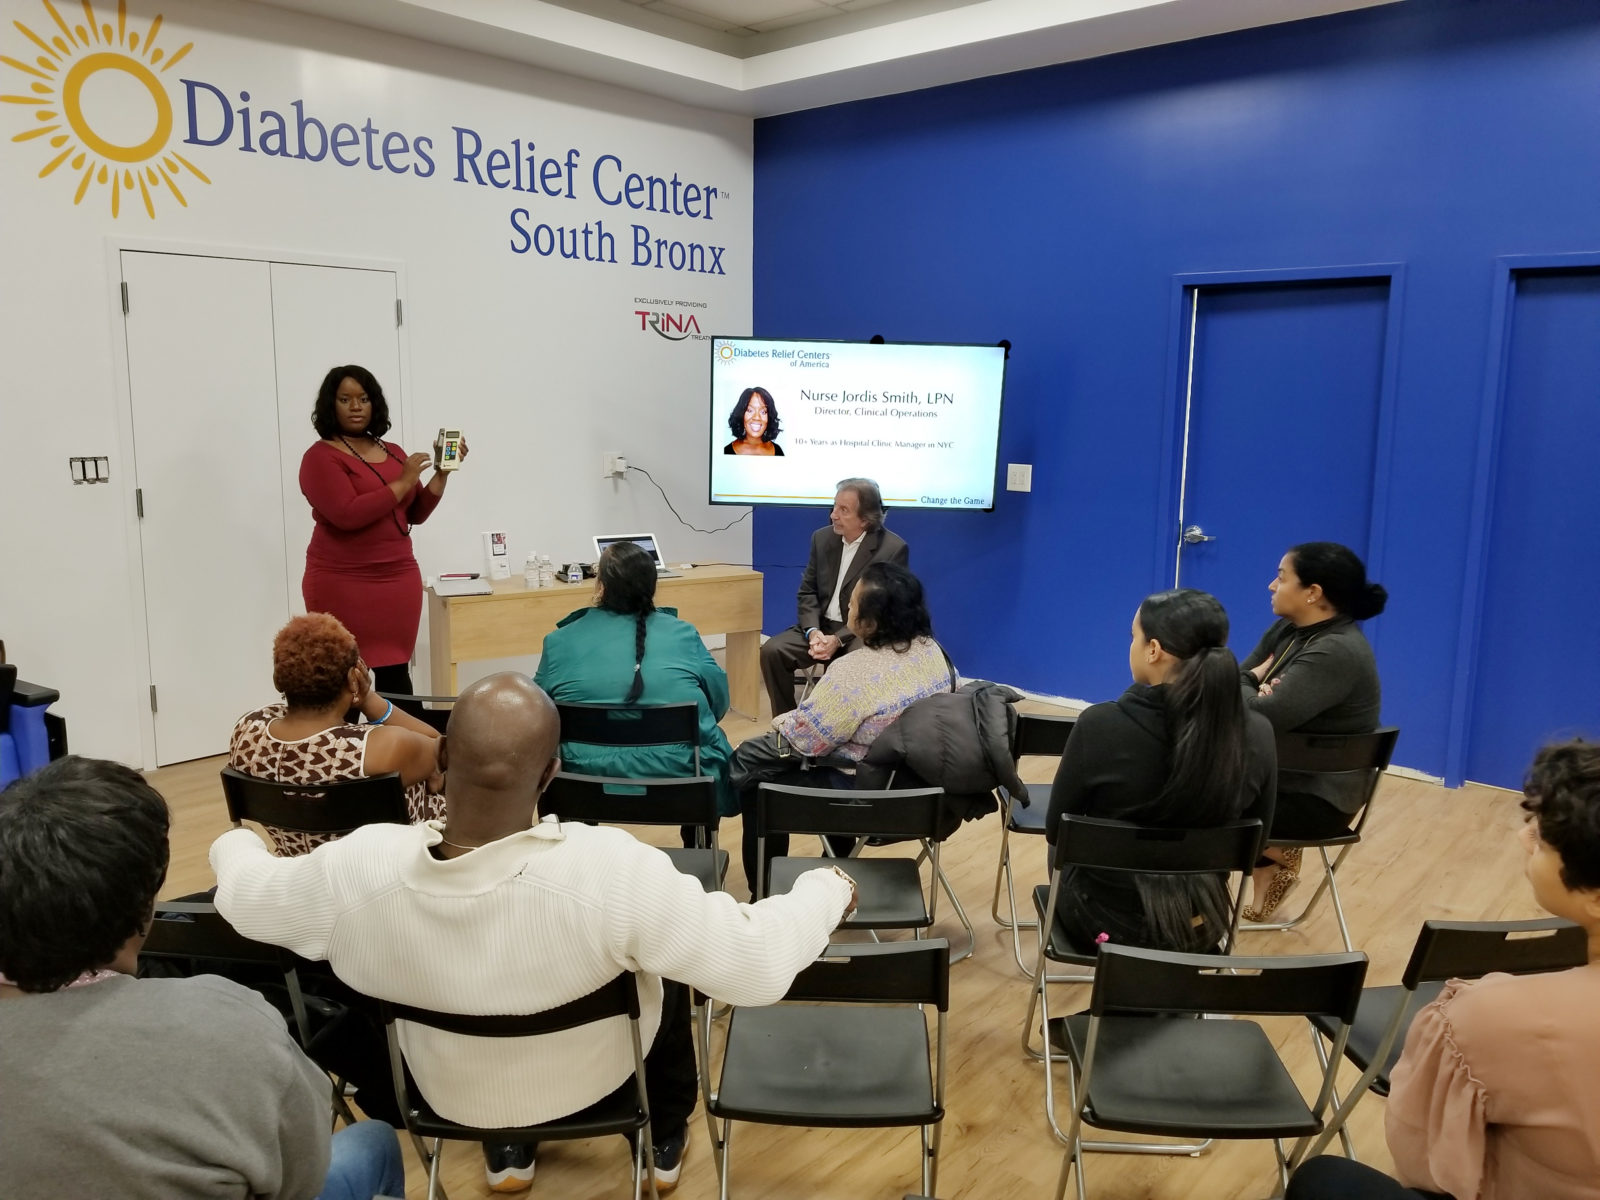 NYC's First Diabetes Relief Center Opening Next Week